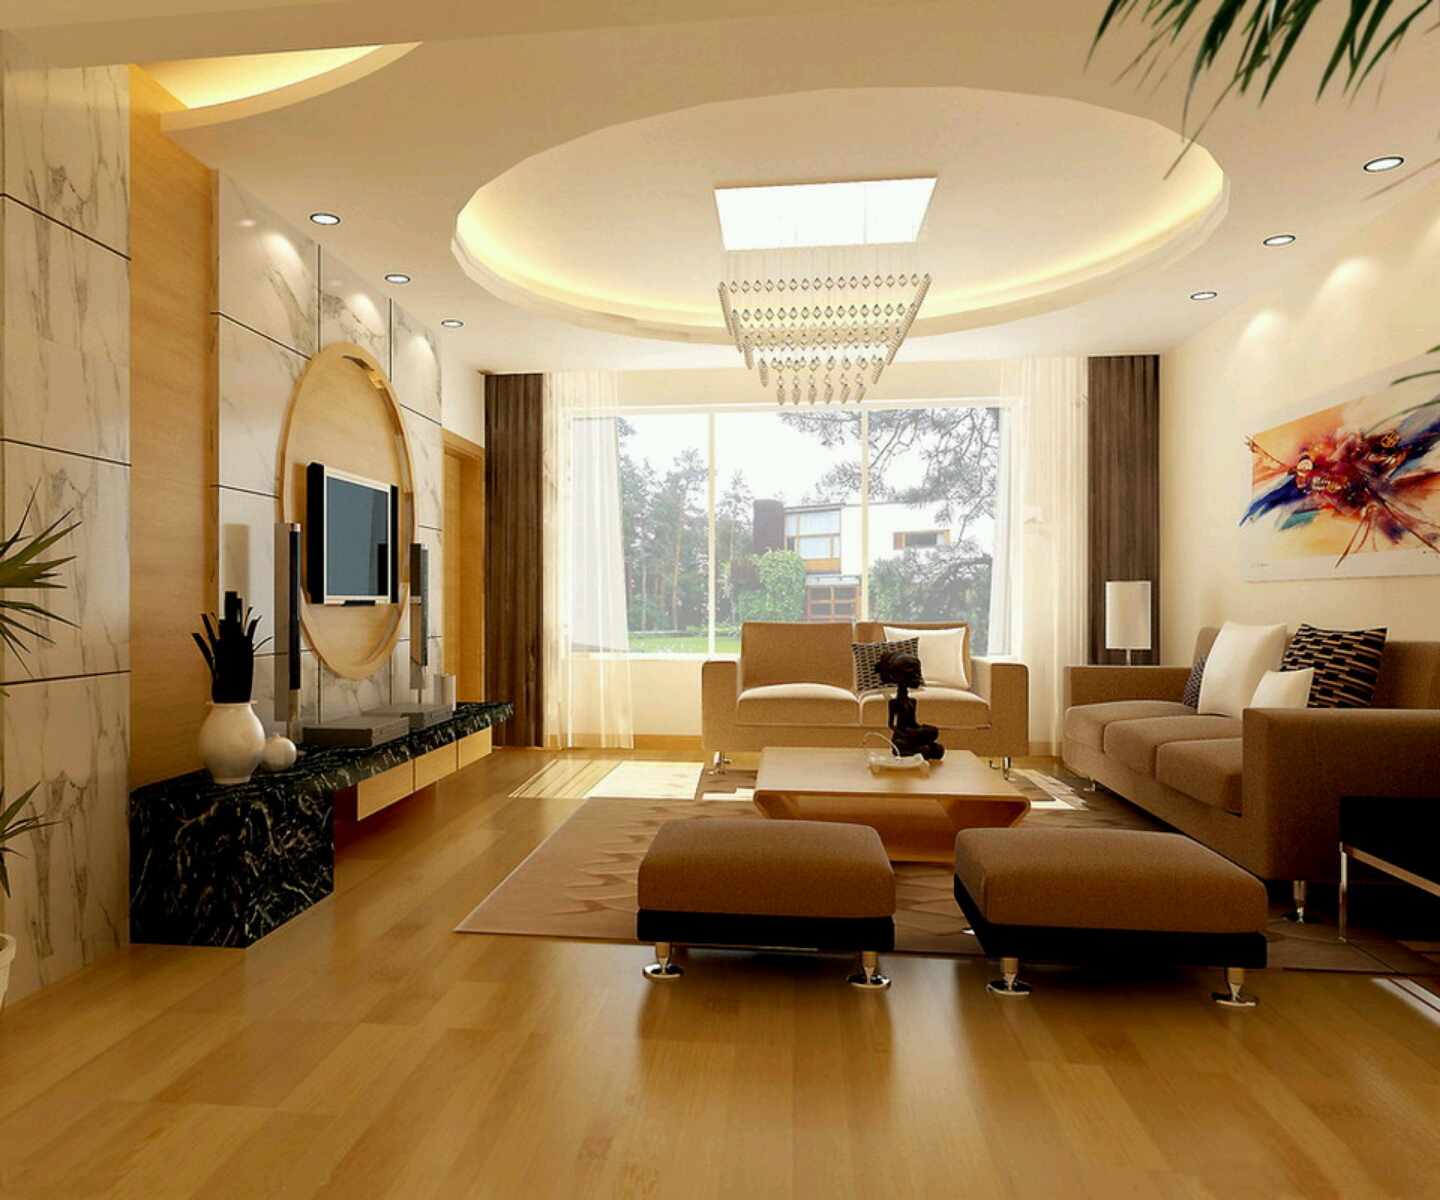 Modern interior decoration living rooms ceiling designs ideas.